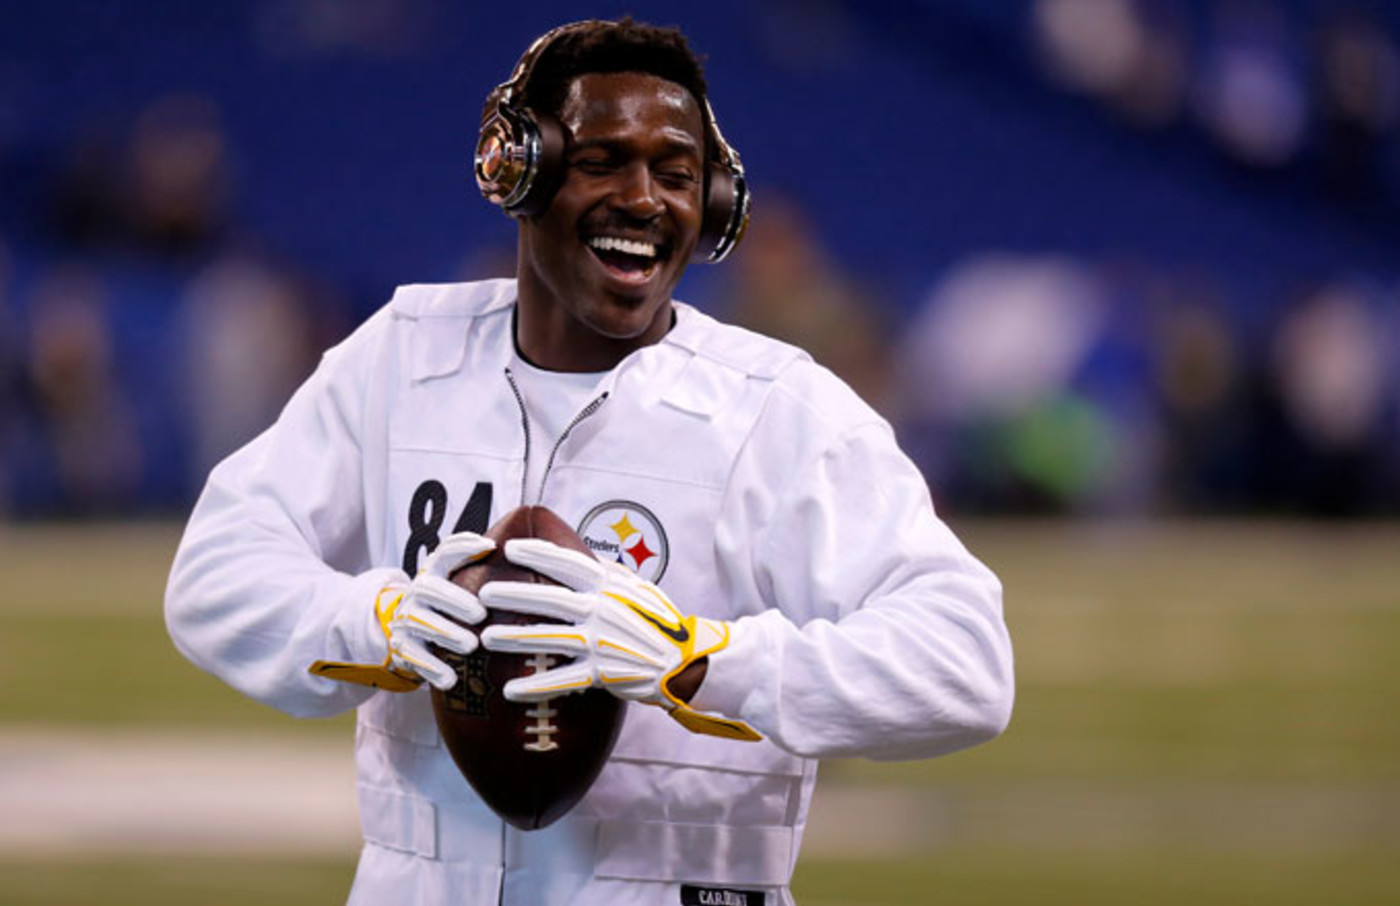 Antonio Brown prior to a Steelers/Colts game.